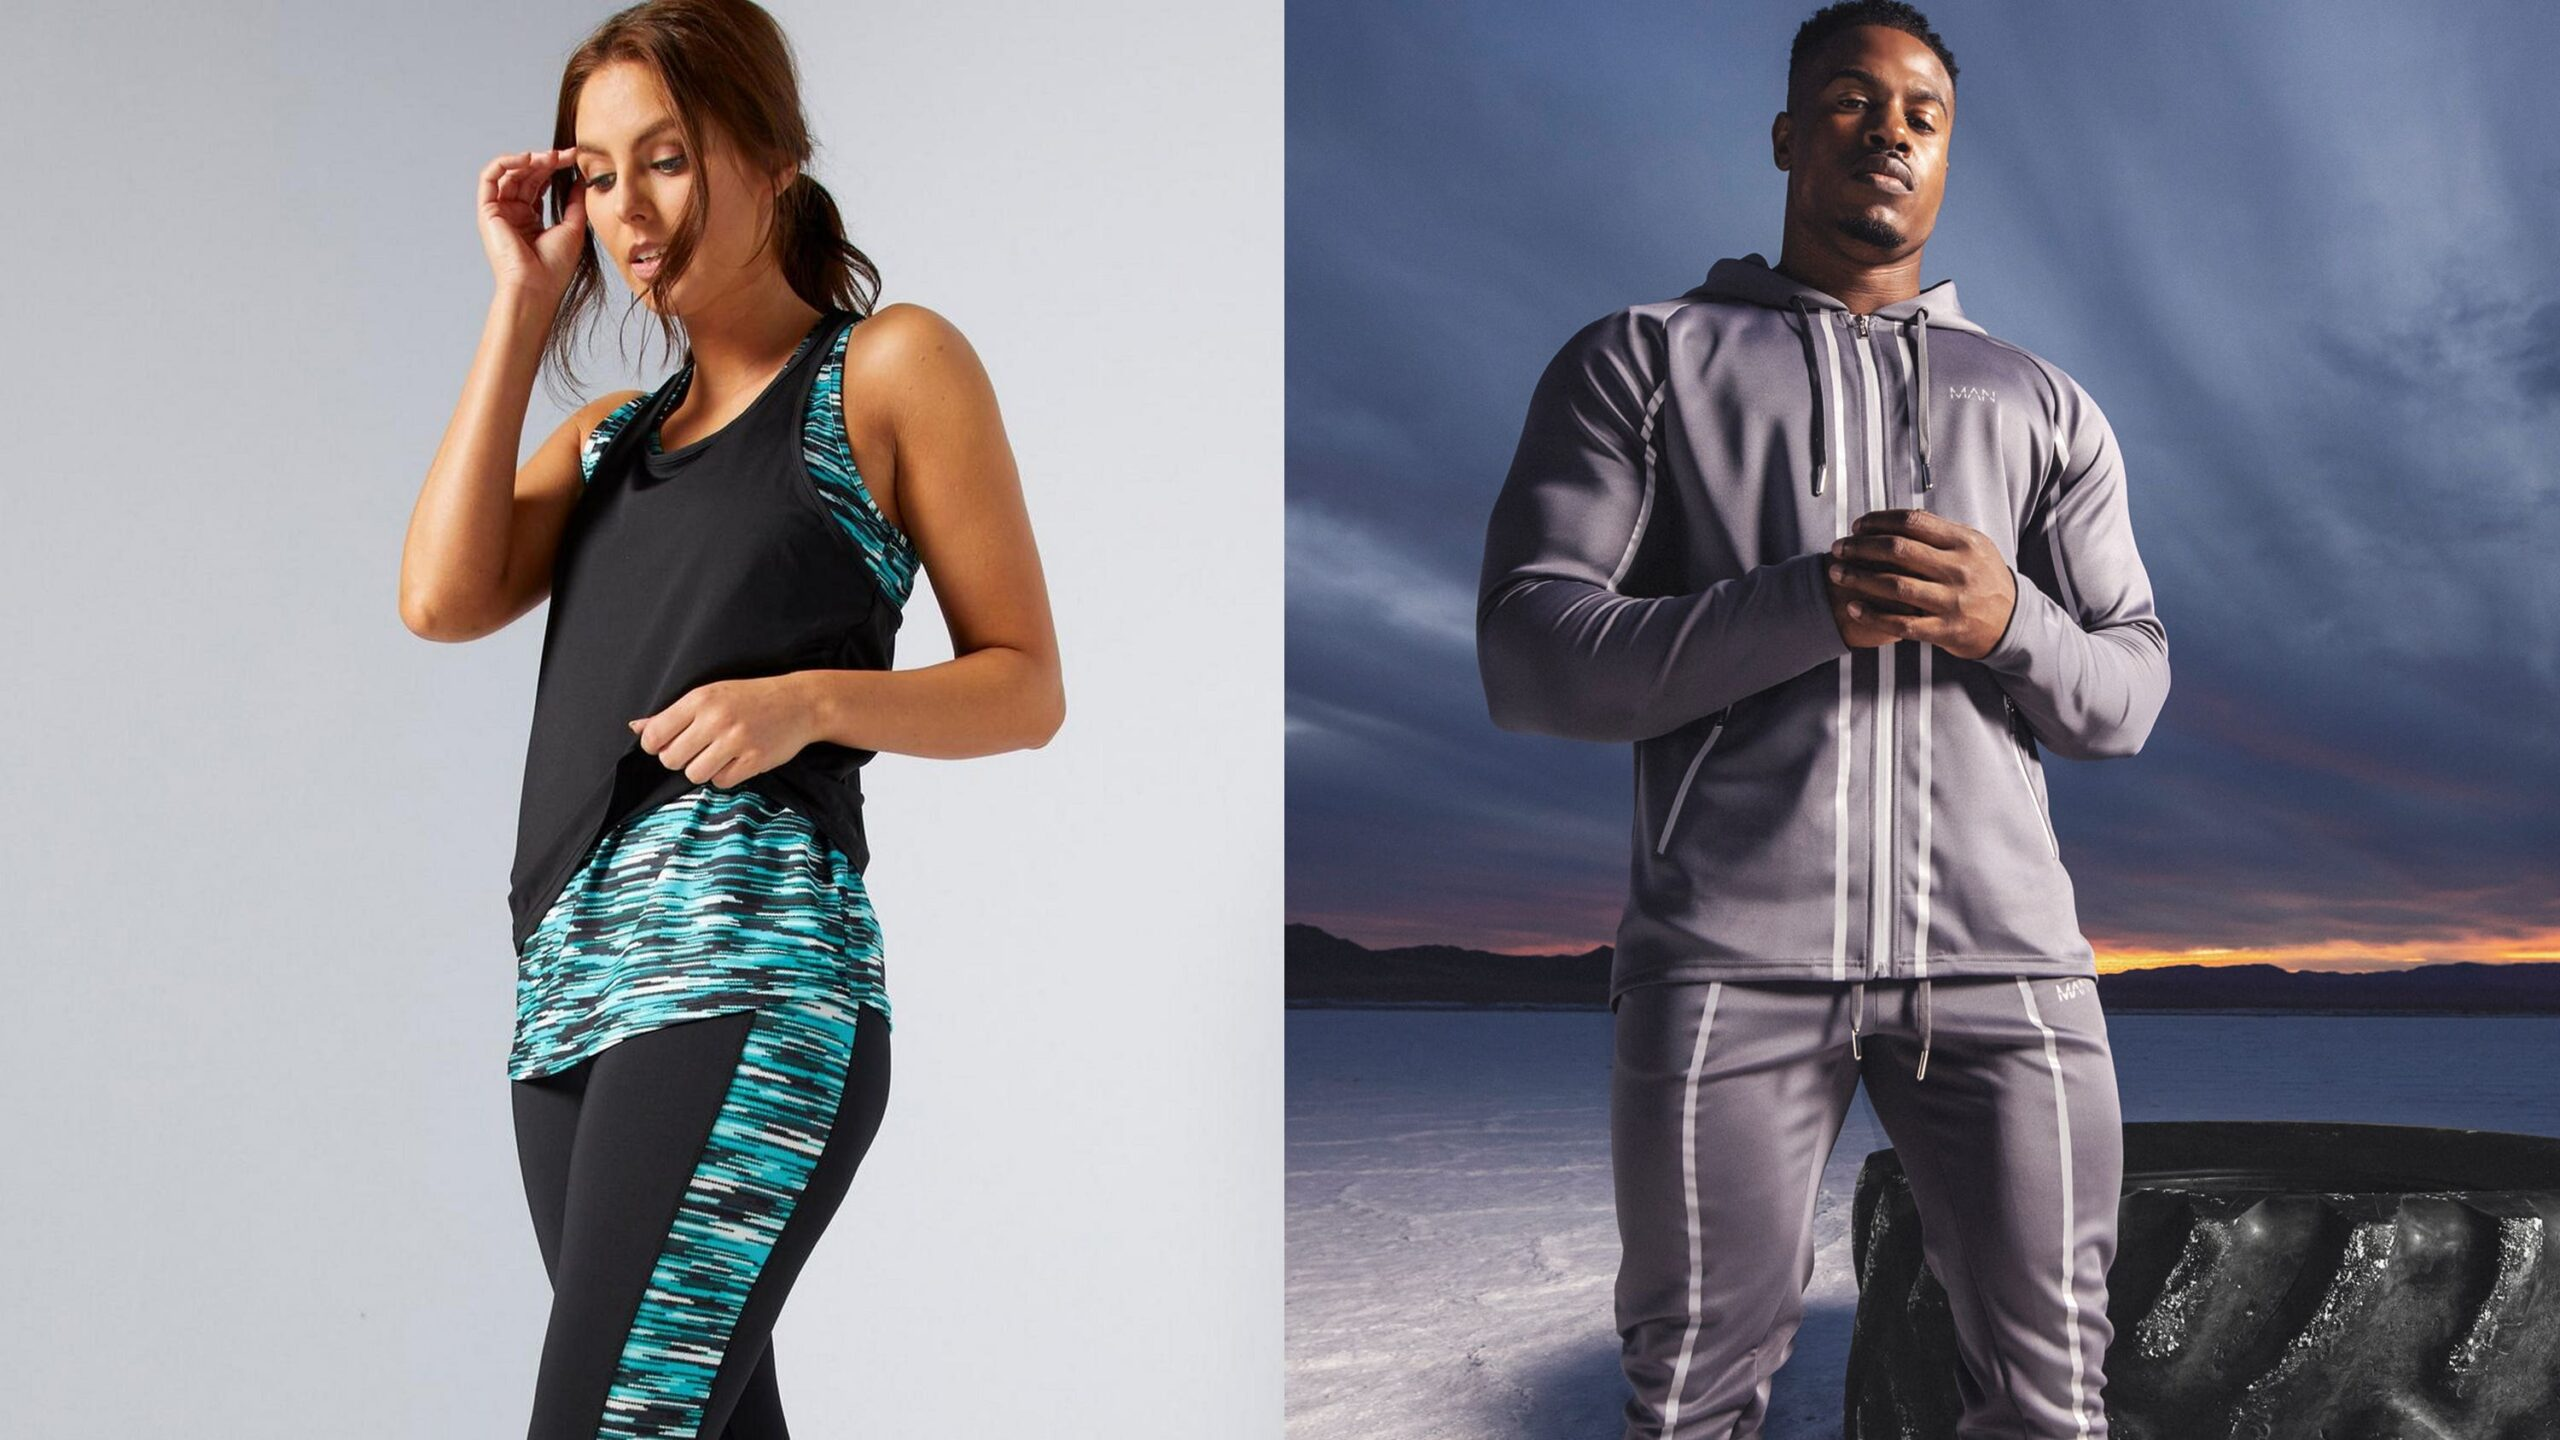 The Best Sports Kit For Winter Workouts